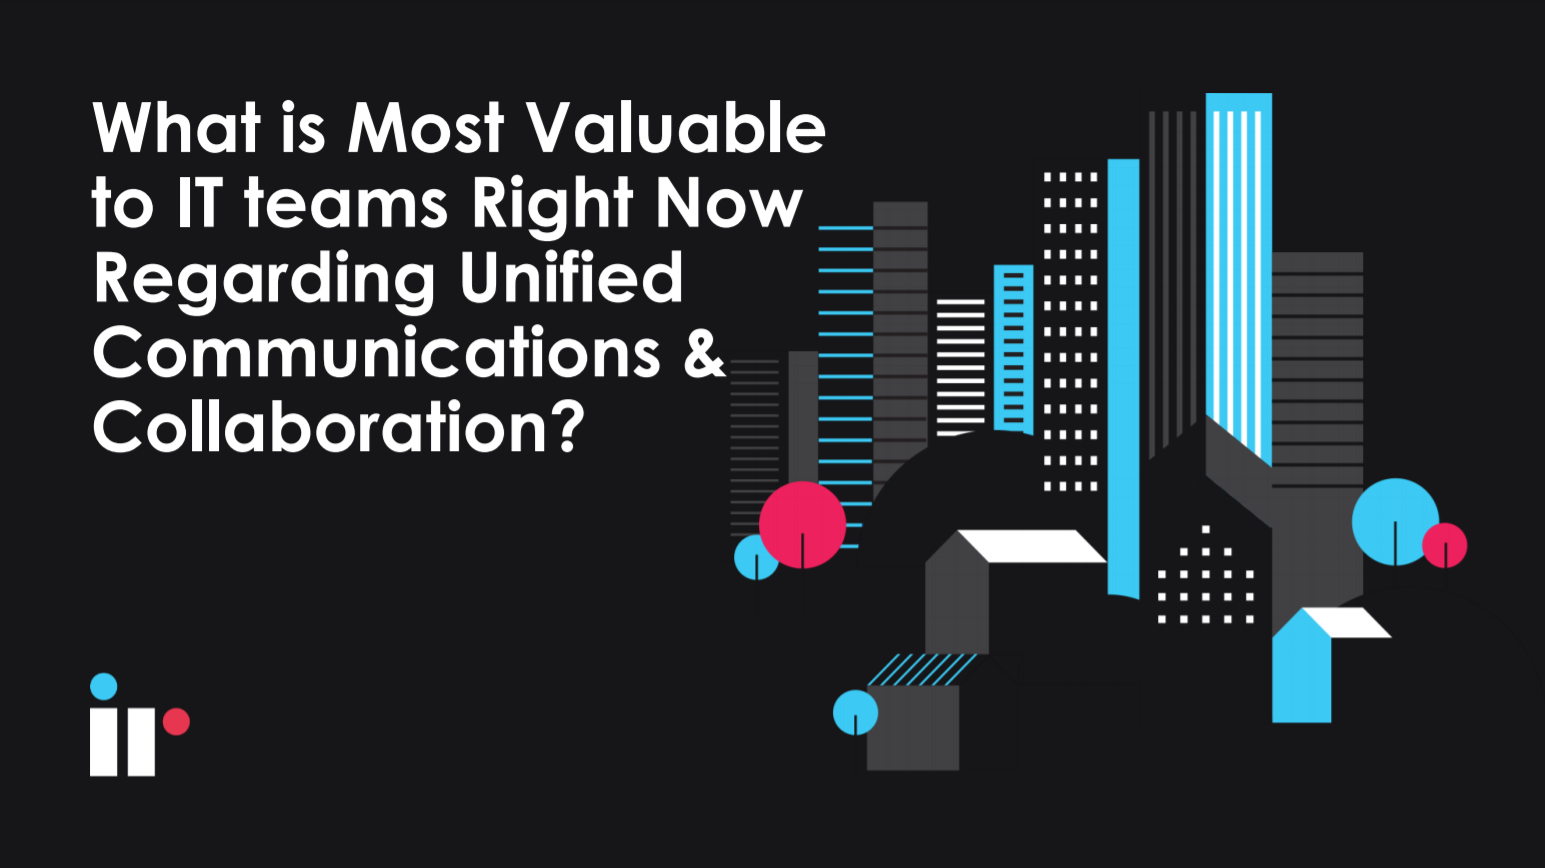 What is most valuable to IT right now